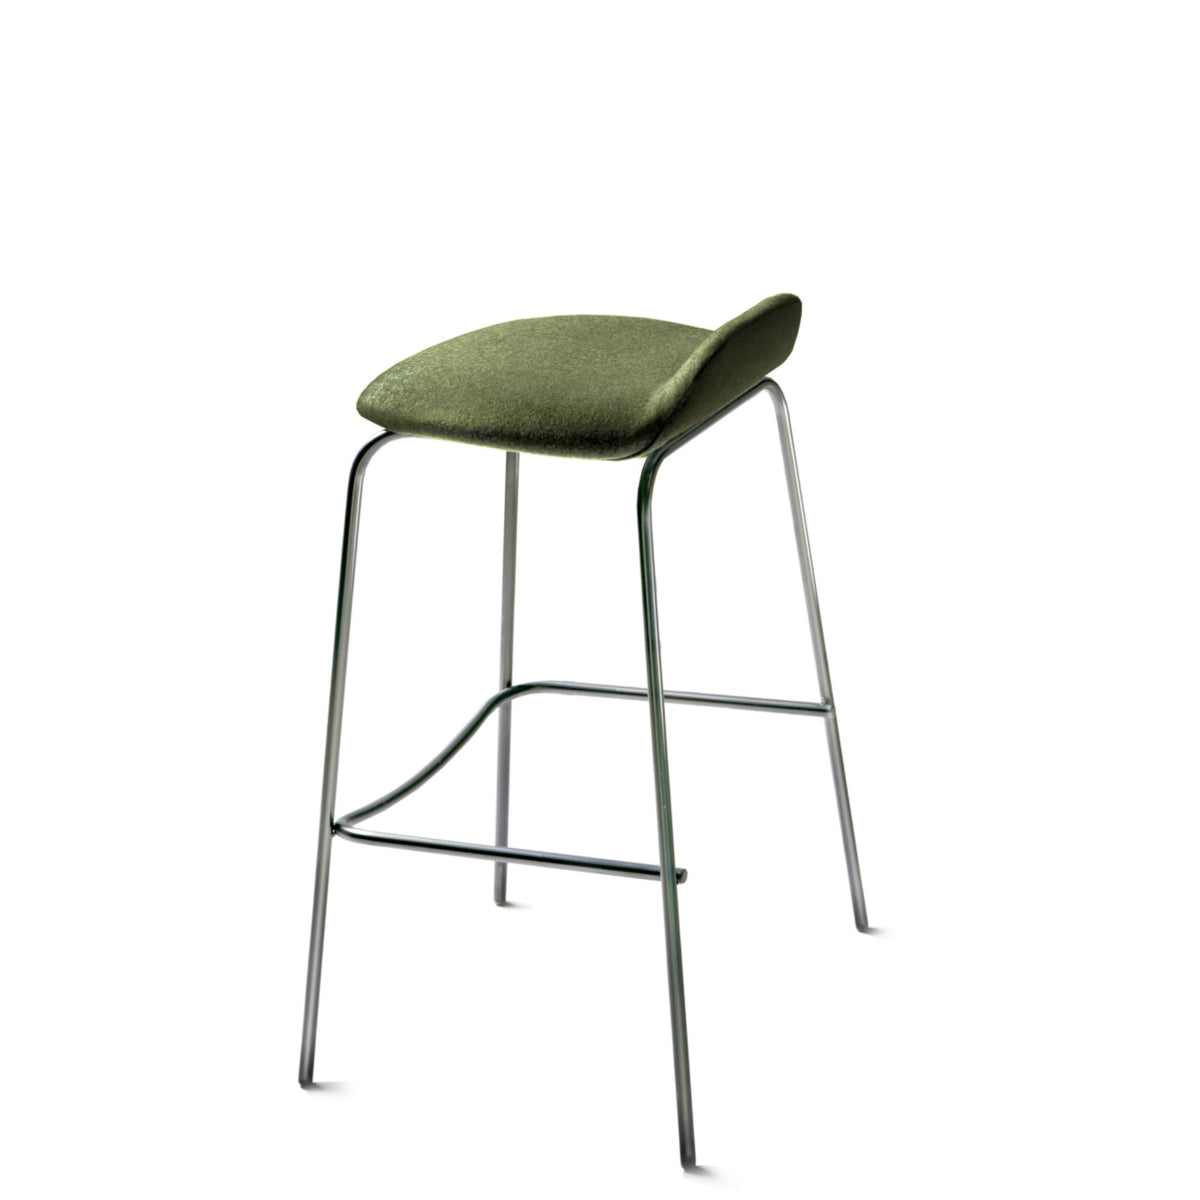 New Design Group Coffee Stool Fully Upholstered Low Back Camphill CUZ1K